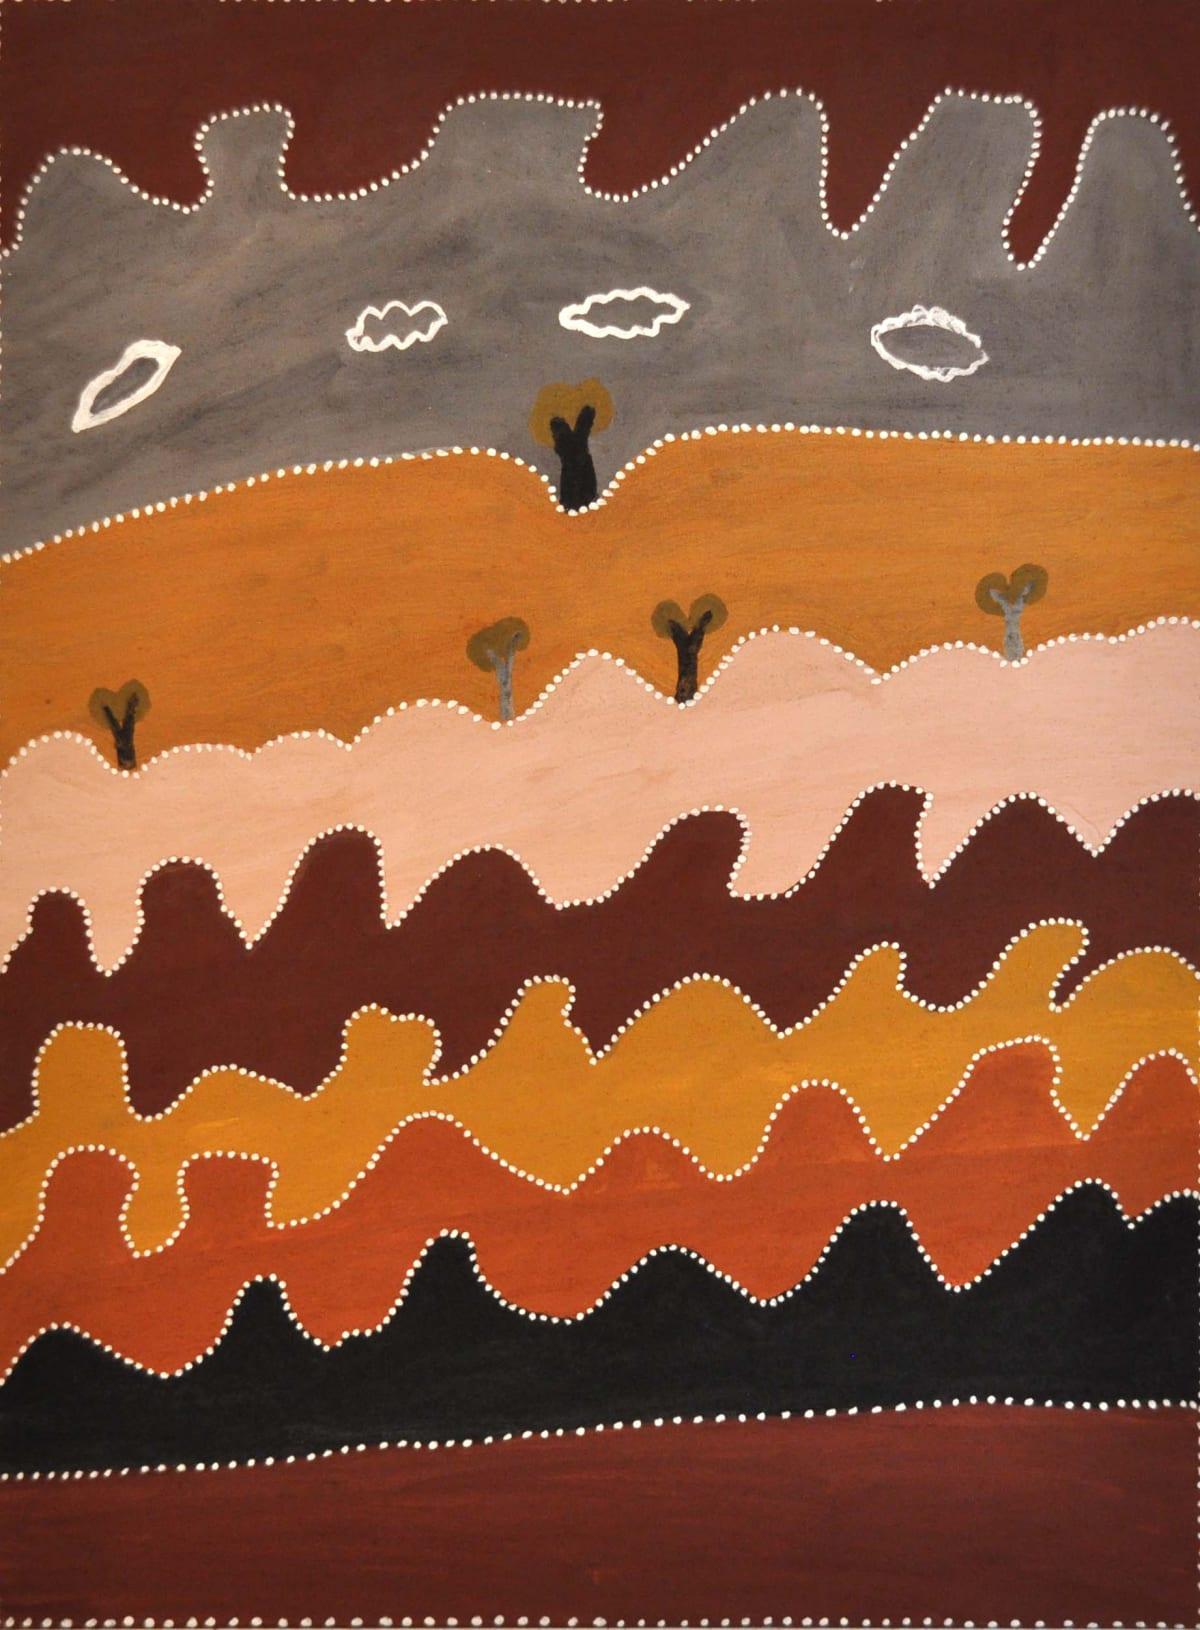 Betty Carrington Ngargooroon natural ochre and pigments on canvas 120 x 90 cm